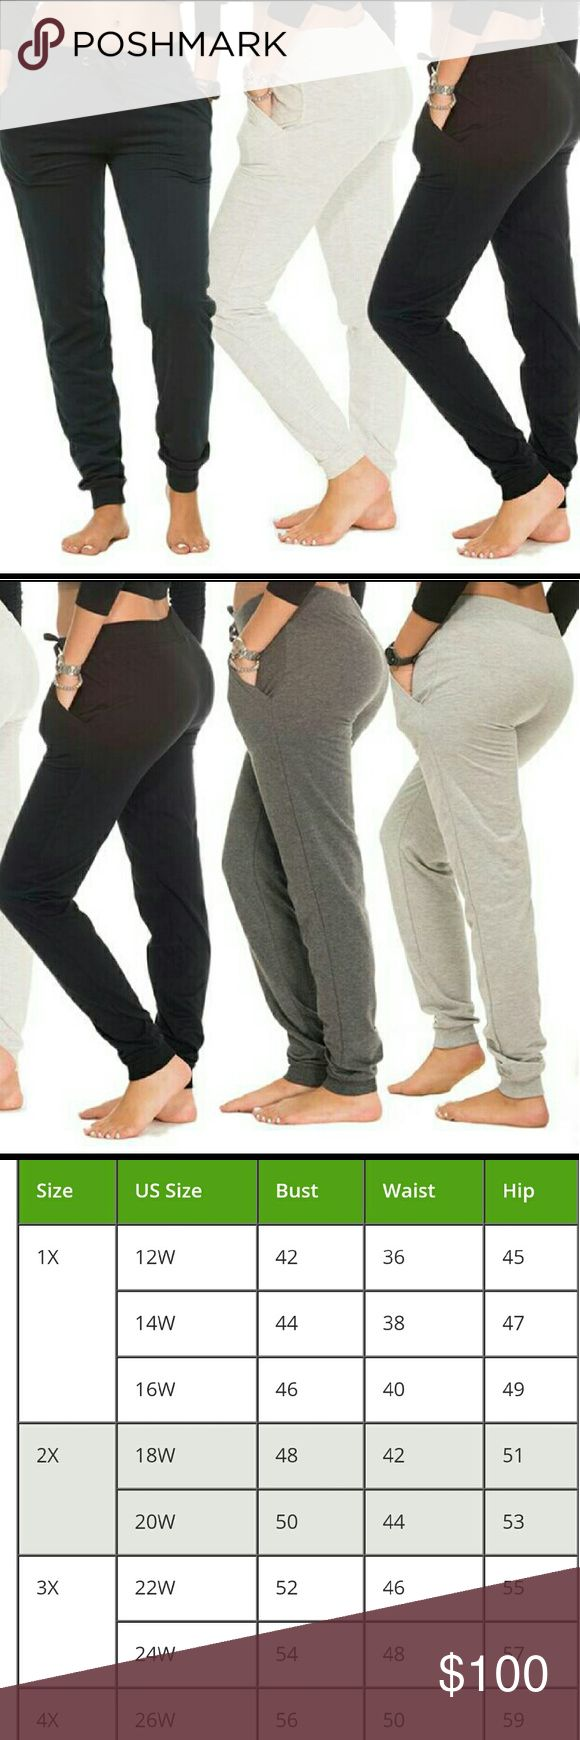 🌻FINAL PRICE🌻 5 pack-Coco Limon joggers Brand new Women's jogger pants Colors are: grey, black, charcoal, navy & heather None of them have been worn These are plus size-3x-see size chart All measurments are in inches Multiple colors 2 have been opened for a showing-again, never worn Soft cotton poly blend Elastic waist & cuffed ankles Ribbed pockets 55% cotton & 45% polyester Same/next day shipping  All low ball offers will be declined Coco Limon Pants Track Pants & Joggers